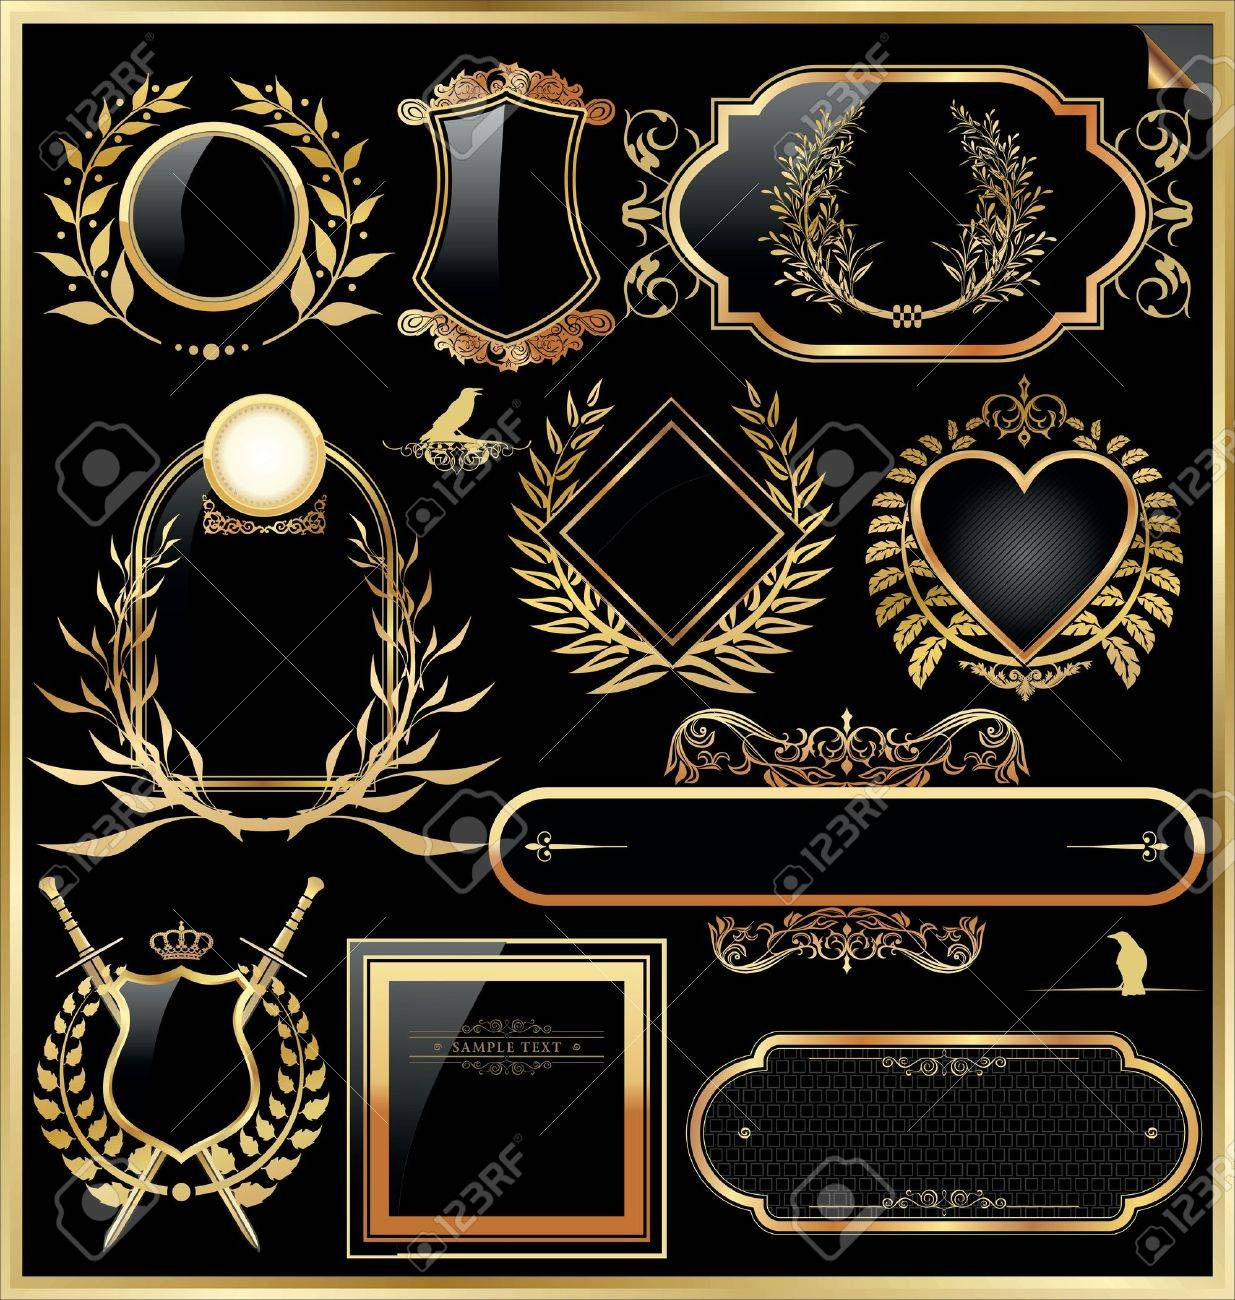 228ffa26ed3 Vector Set Of Black Gold - Framed Labels Royalty Free Cliparts ...